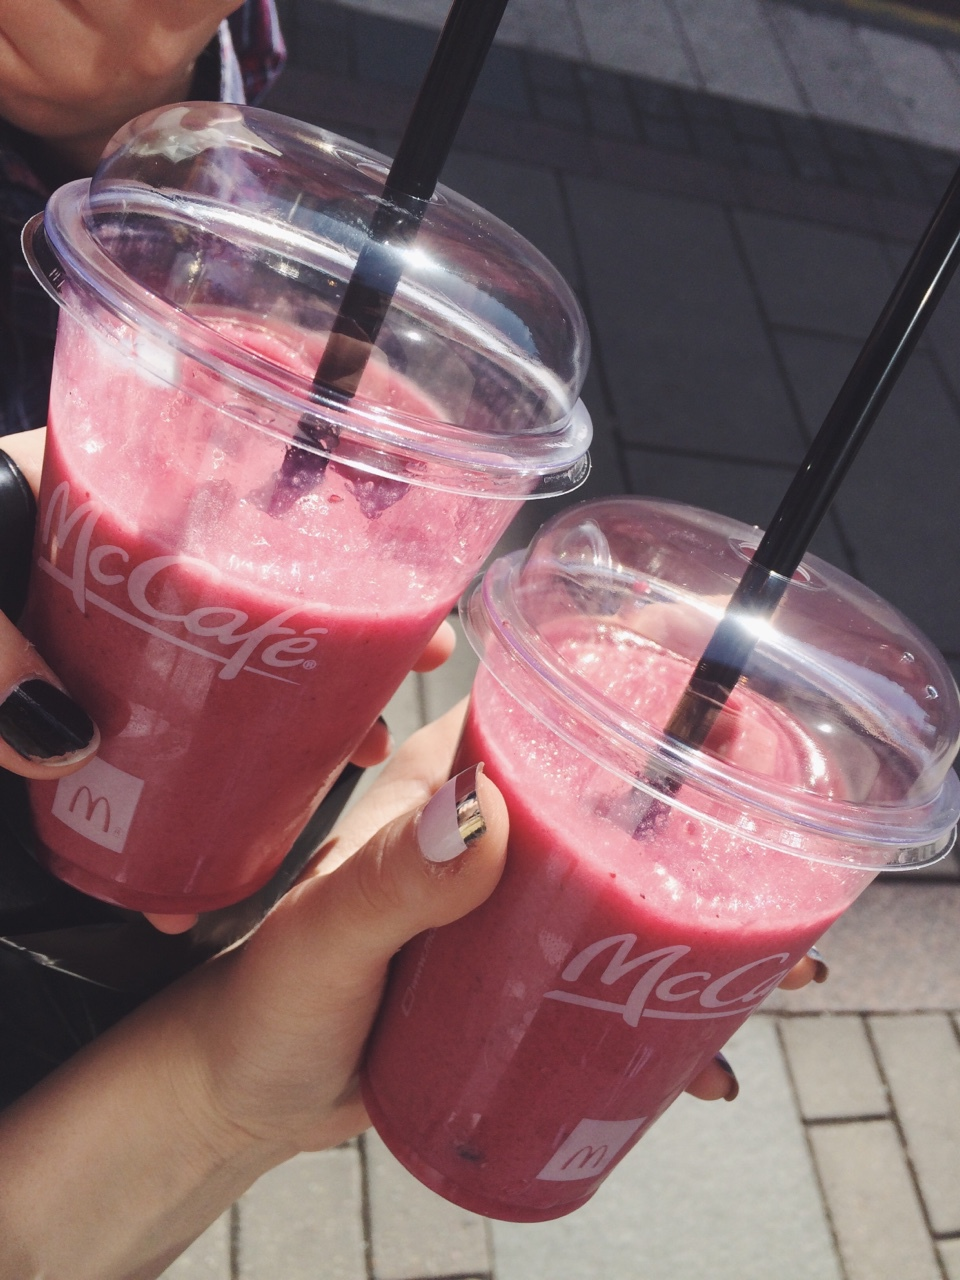 boho, delicious, food, fruit, fruits, grunge, healthy, hipster, indie, mc donalds, pale, photography, pink, retro, smoothie, tumblr, vintage